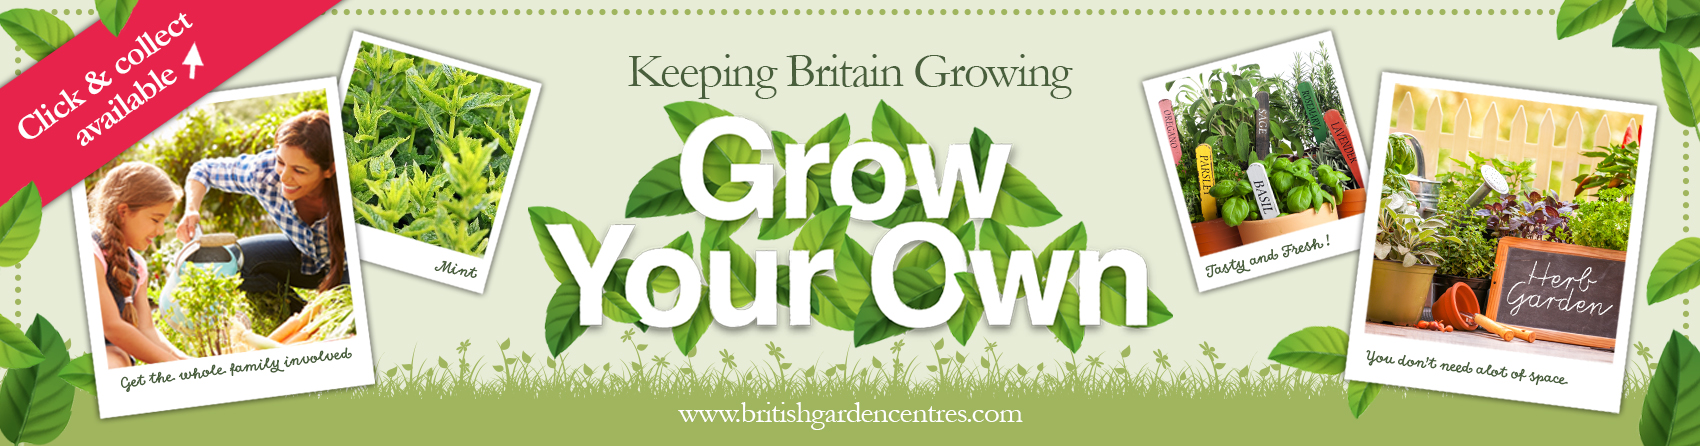 Grow your own - herbs